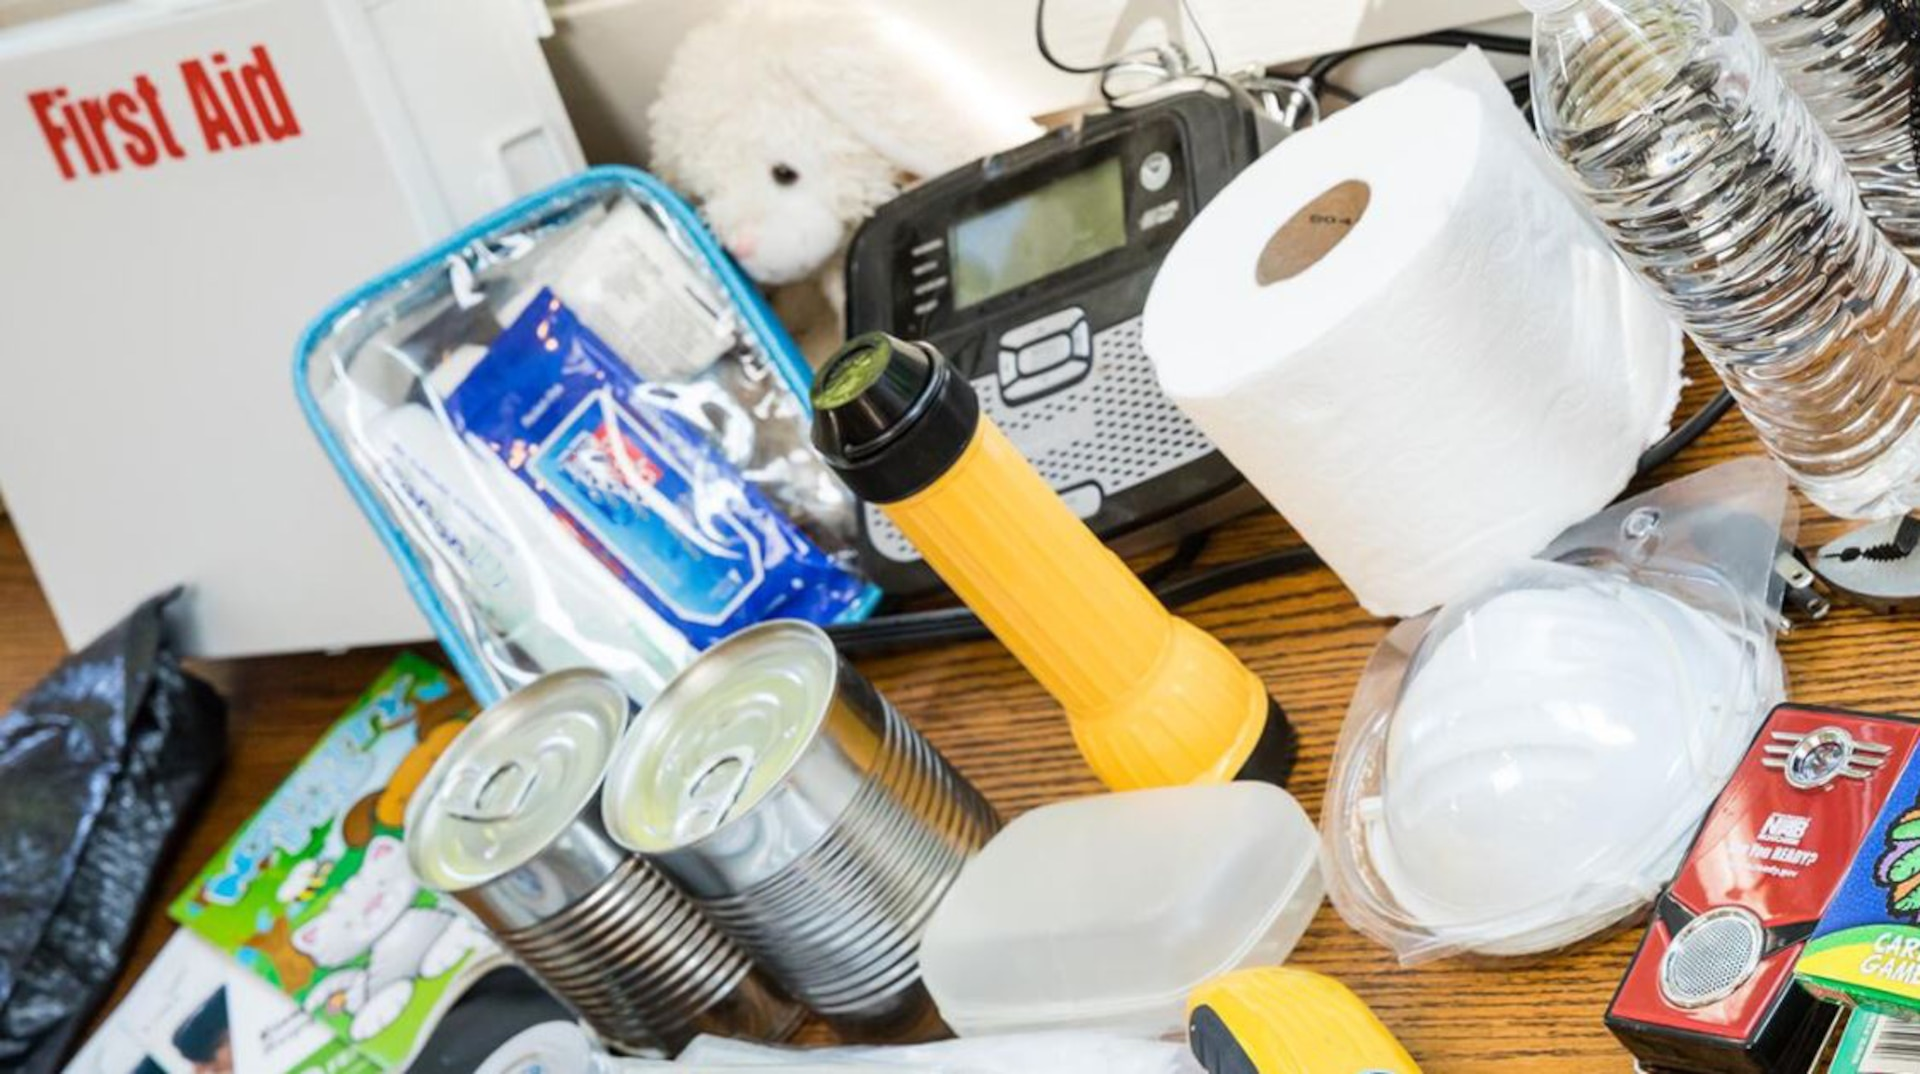 DLA Installation Management Susquehanna, Pennsylvania's Security & Emergency Services provides tips on building an emergency kit